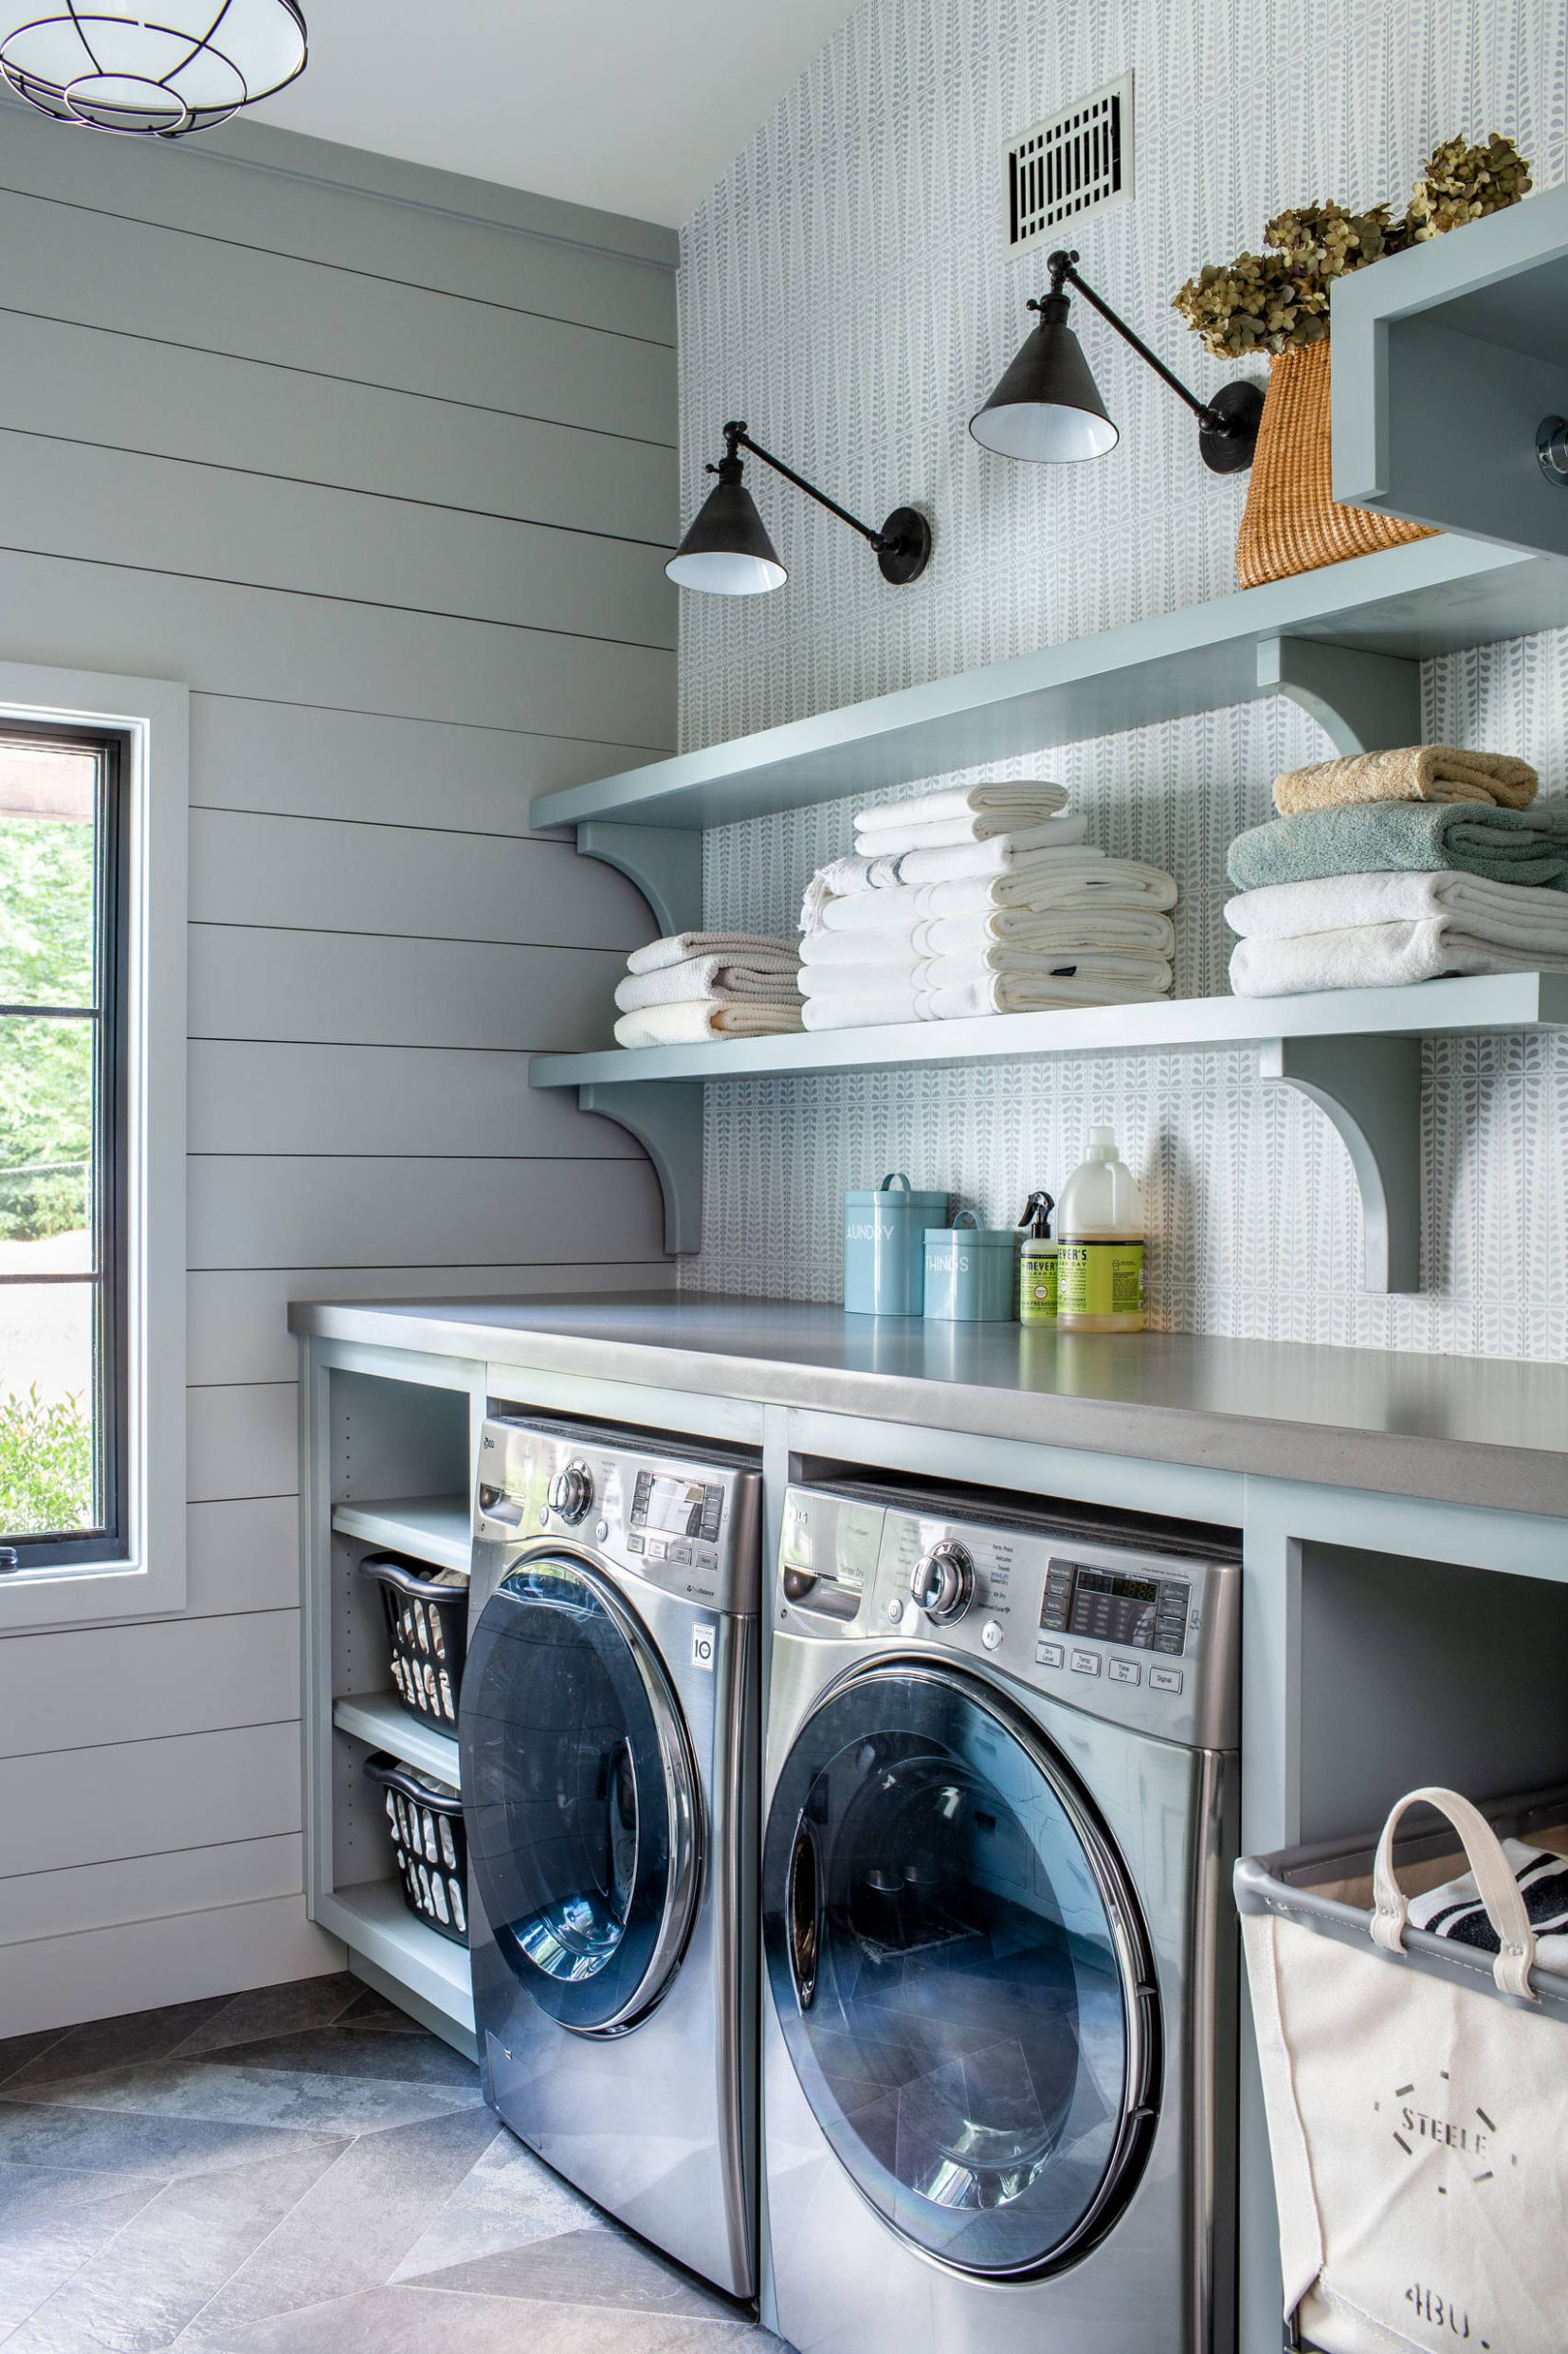 10 Beautiful Laundry Room Pictures & Ideas | Houzz - new laundry room ideas